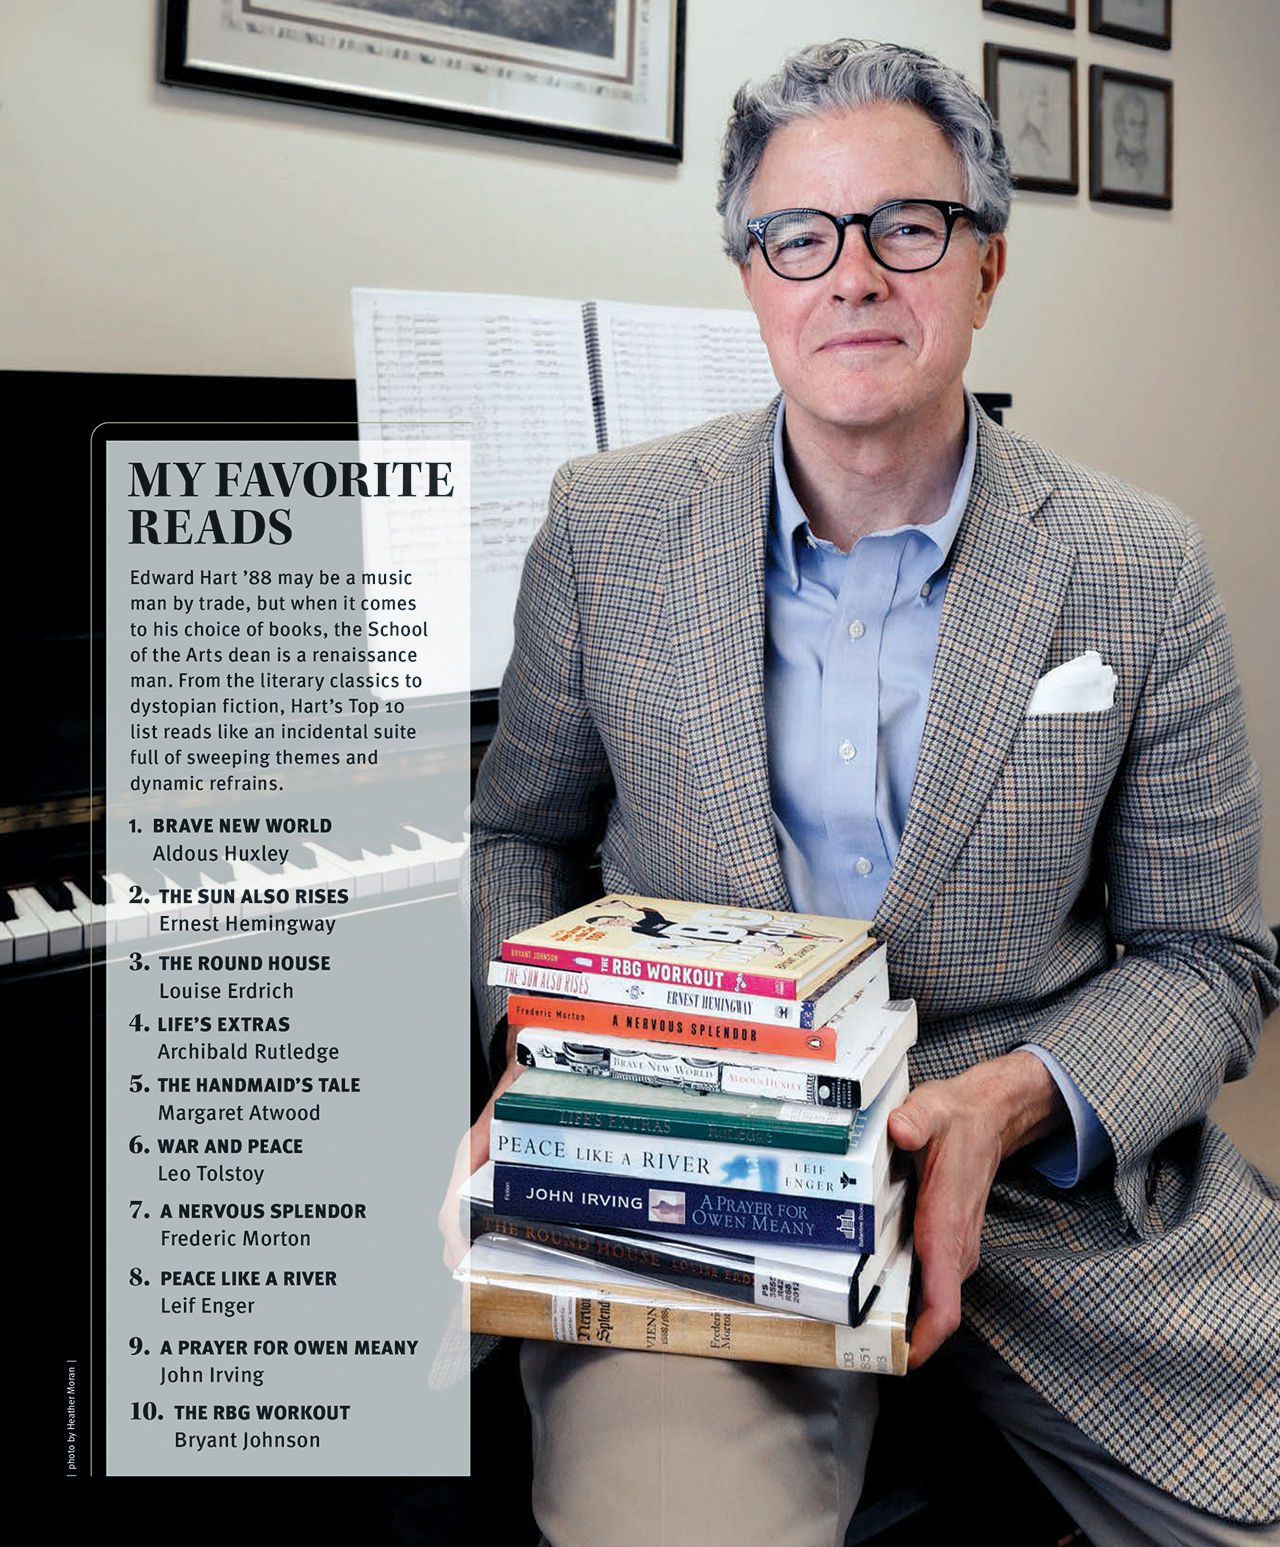 school of the arts dean Edward Hart holds his favorite books including the RBG workout, brave new world, the sun also rises, the handmaid's tale, war and peace and a prayer for owen meany